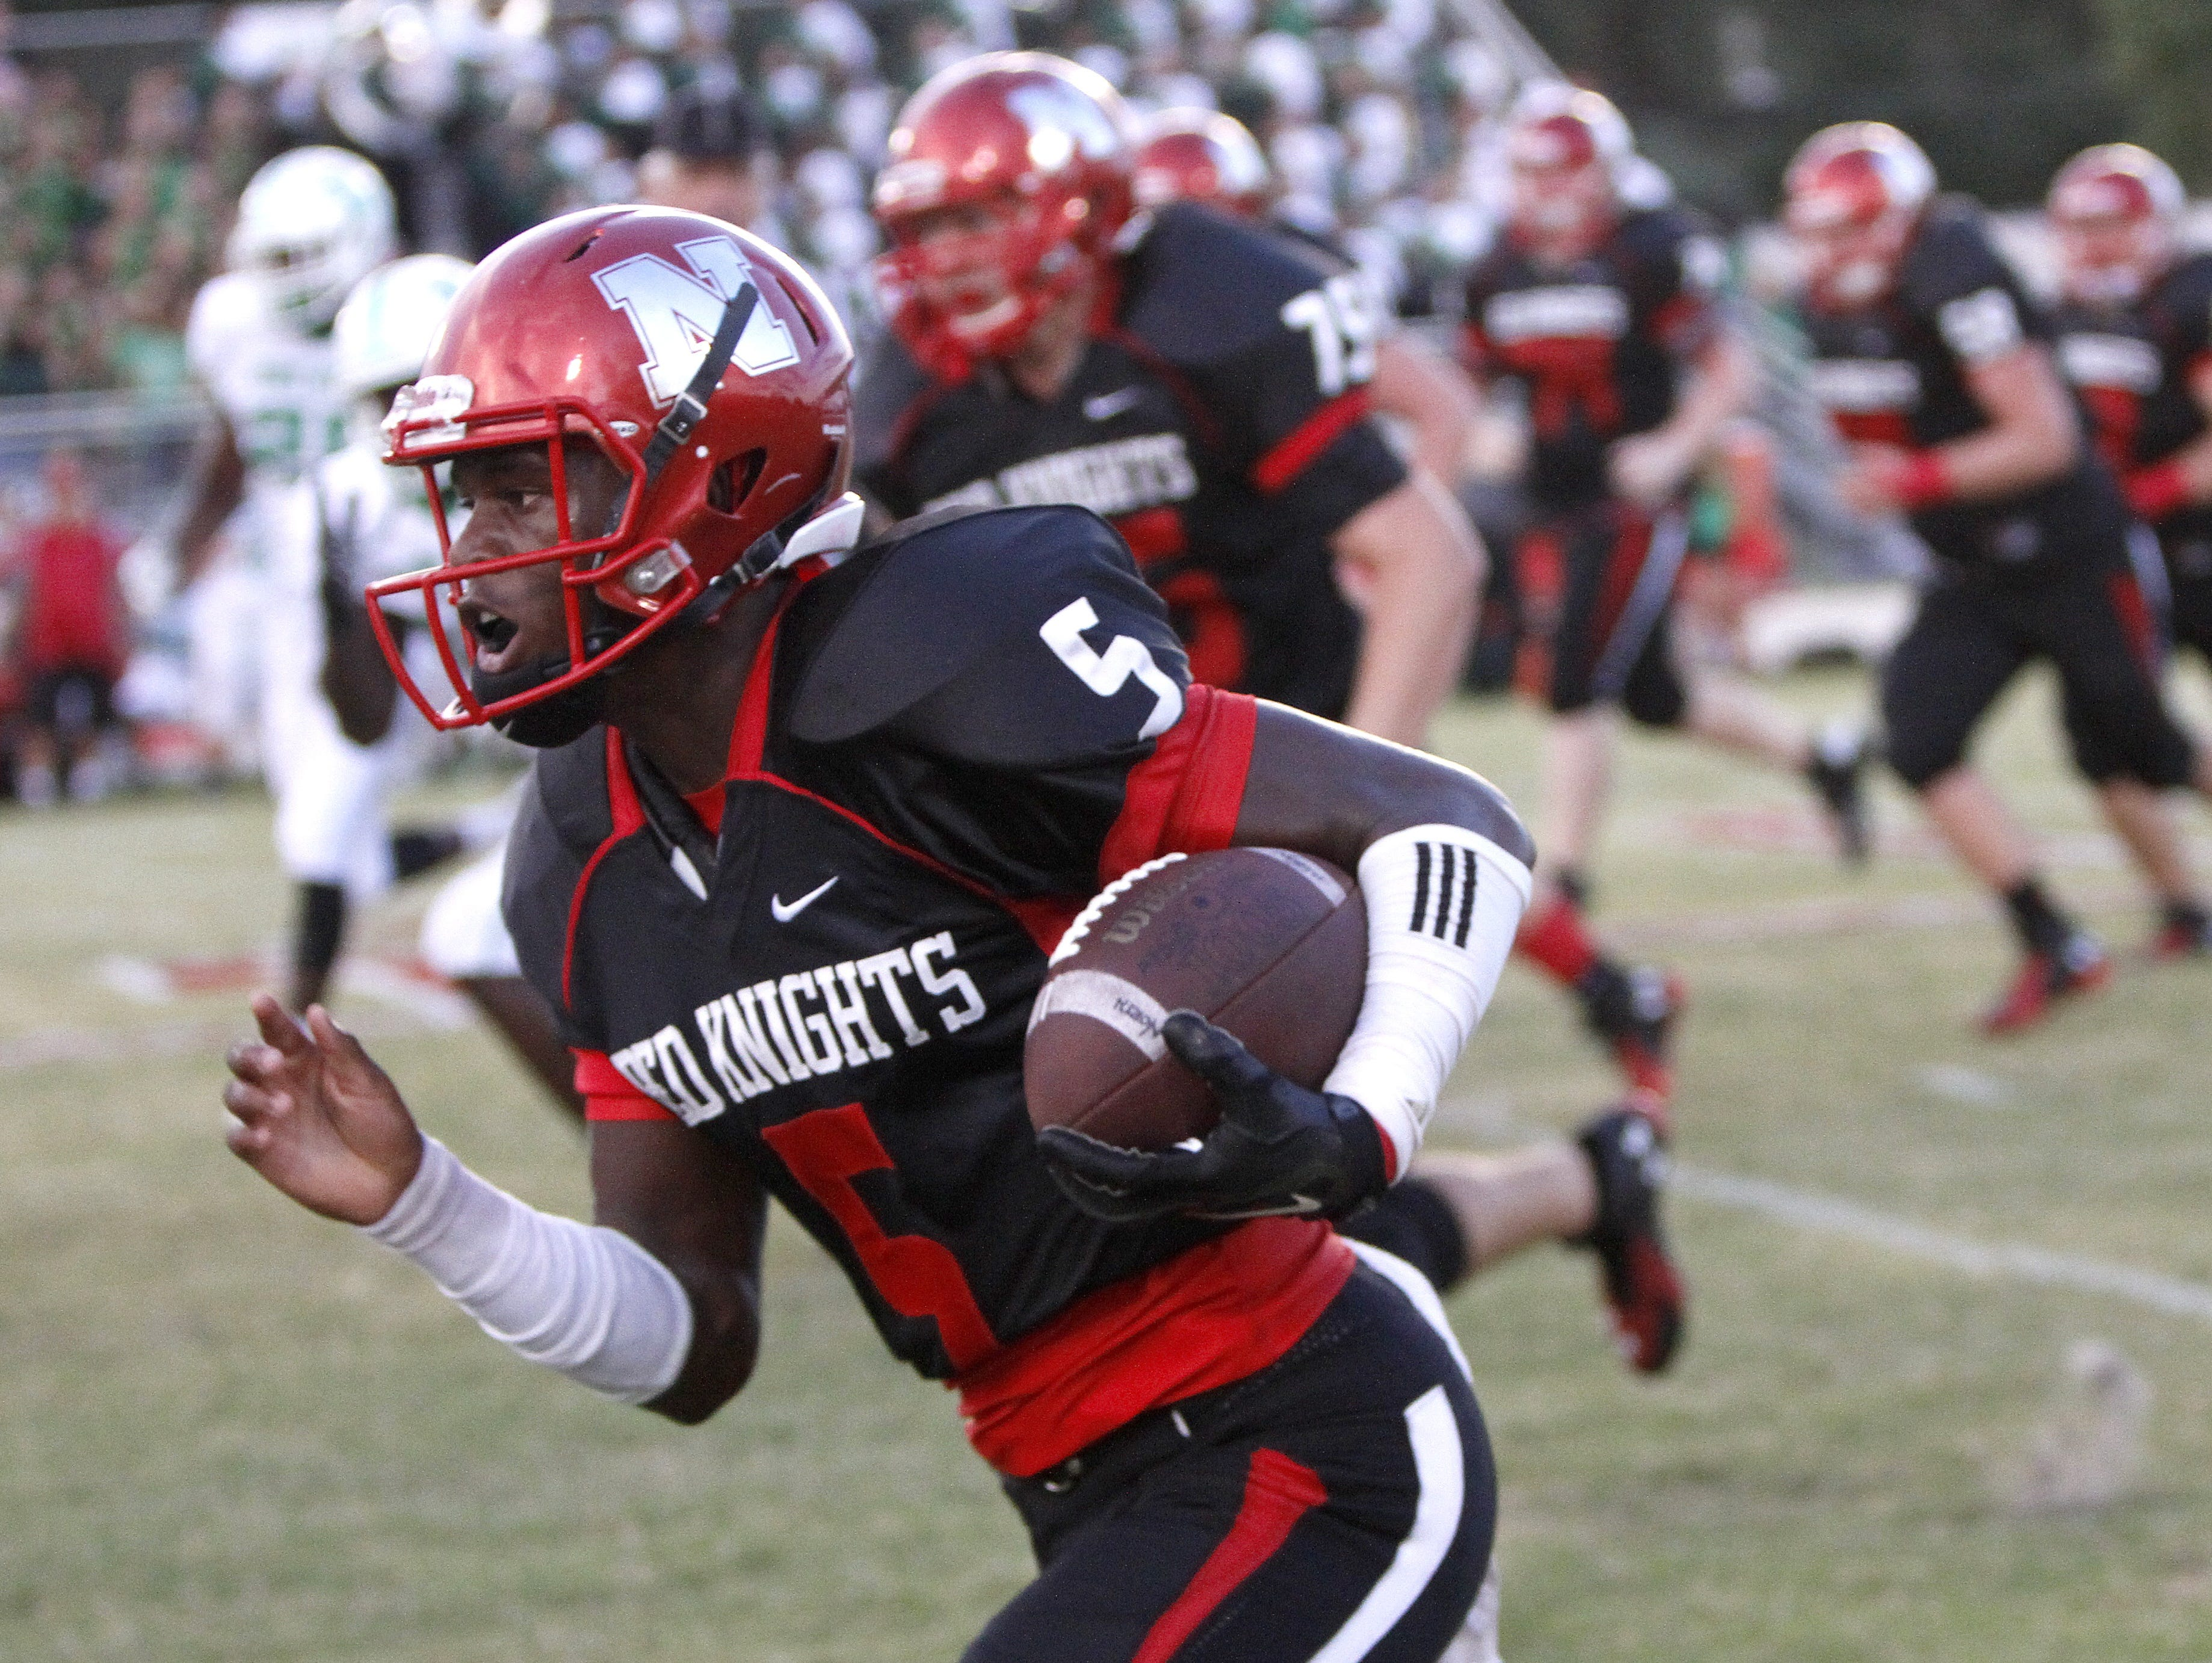 North Fort Myers quarterback J'Ravien Anderson will be an important option for the Red Knights against Charlotte on Friday.